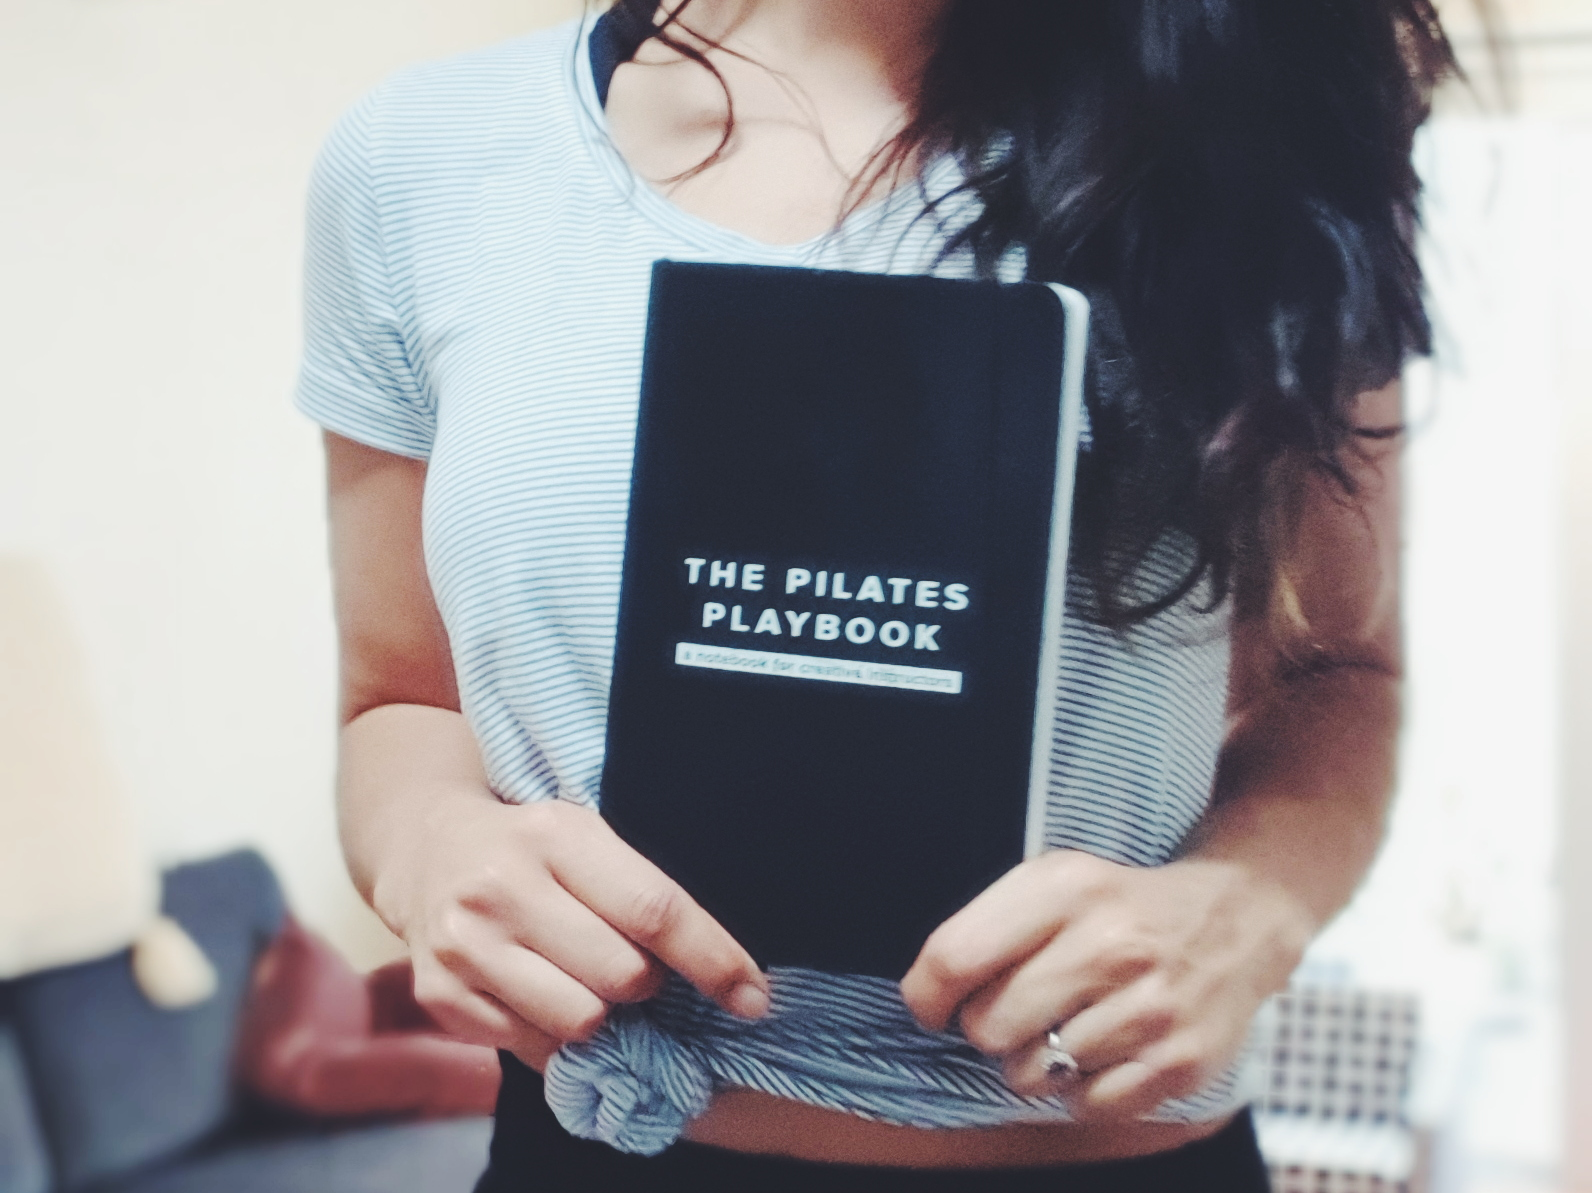 The Pilates Playbook - A class planning tool for Instructors to keep all your  notes in the one place! It also has a self reflection guide at the back to help you figure out your teaching values and philosophy!Click here to purchase!